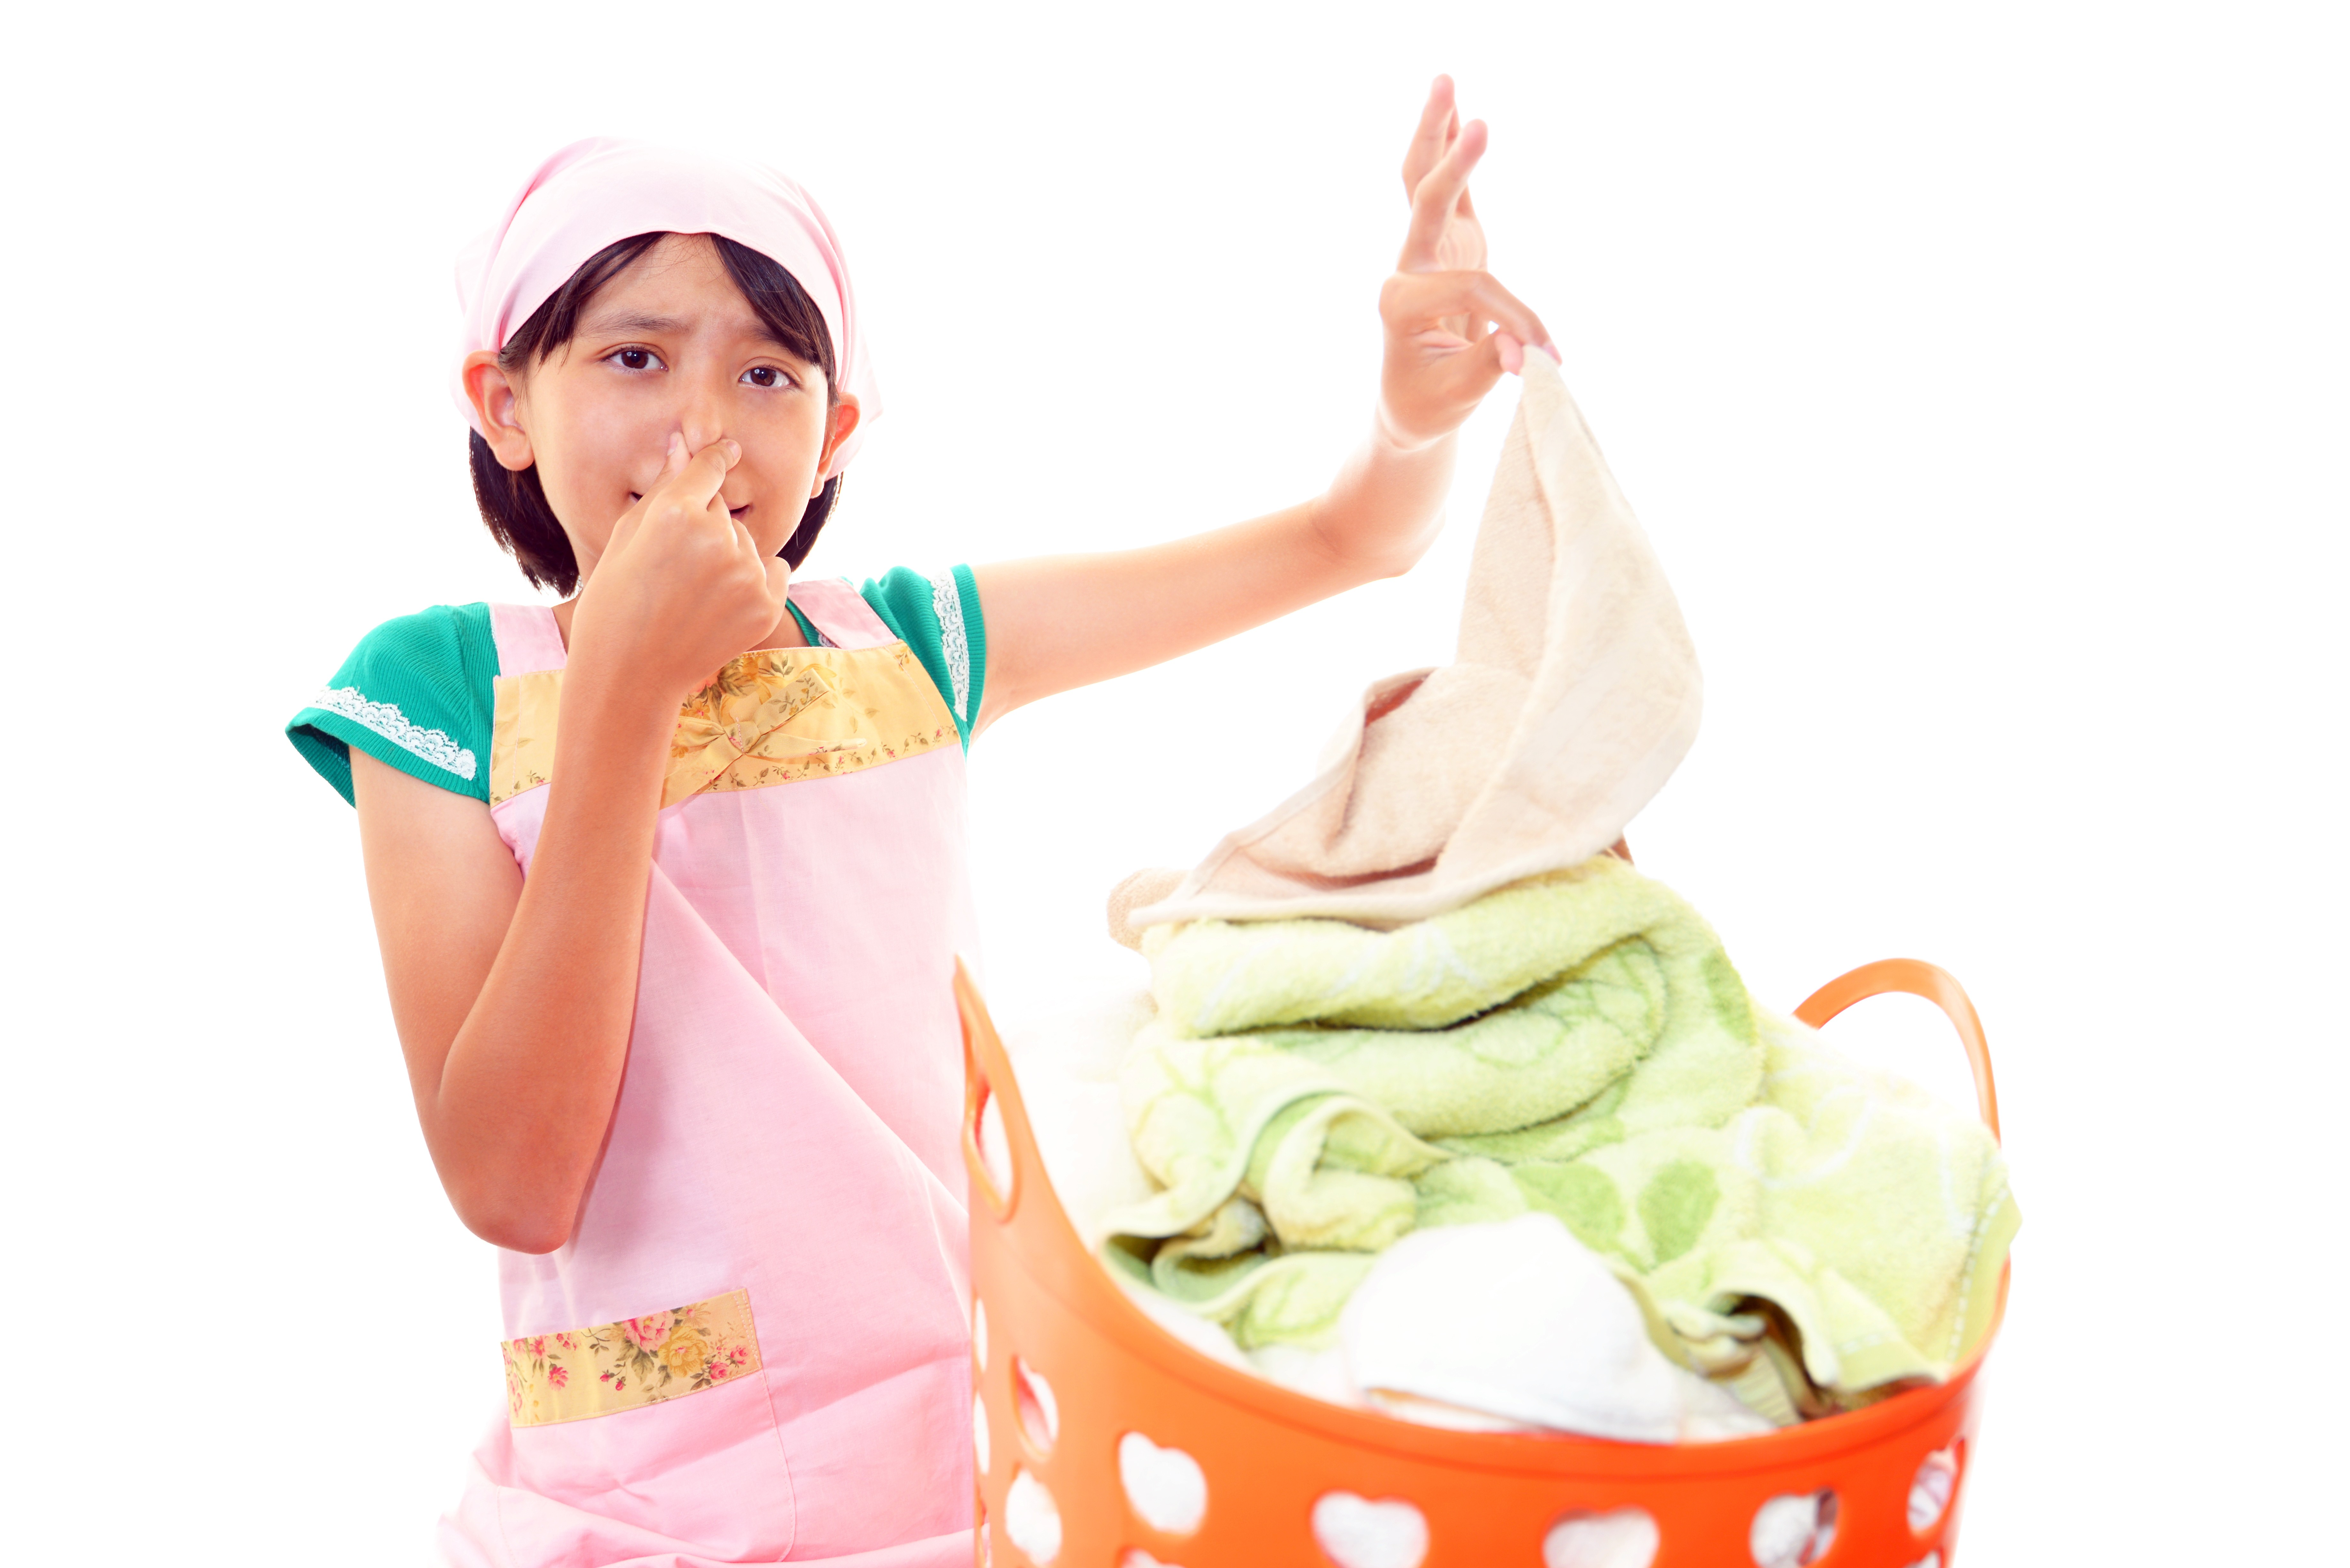 remove mildew smell from towels | OdorKlenz